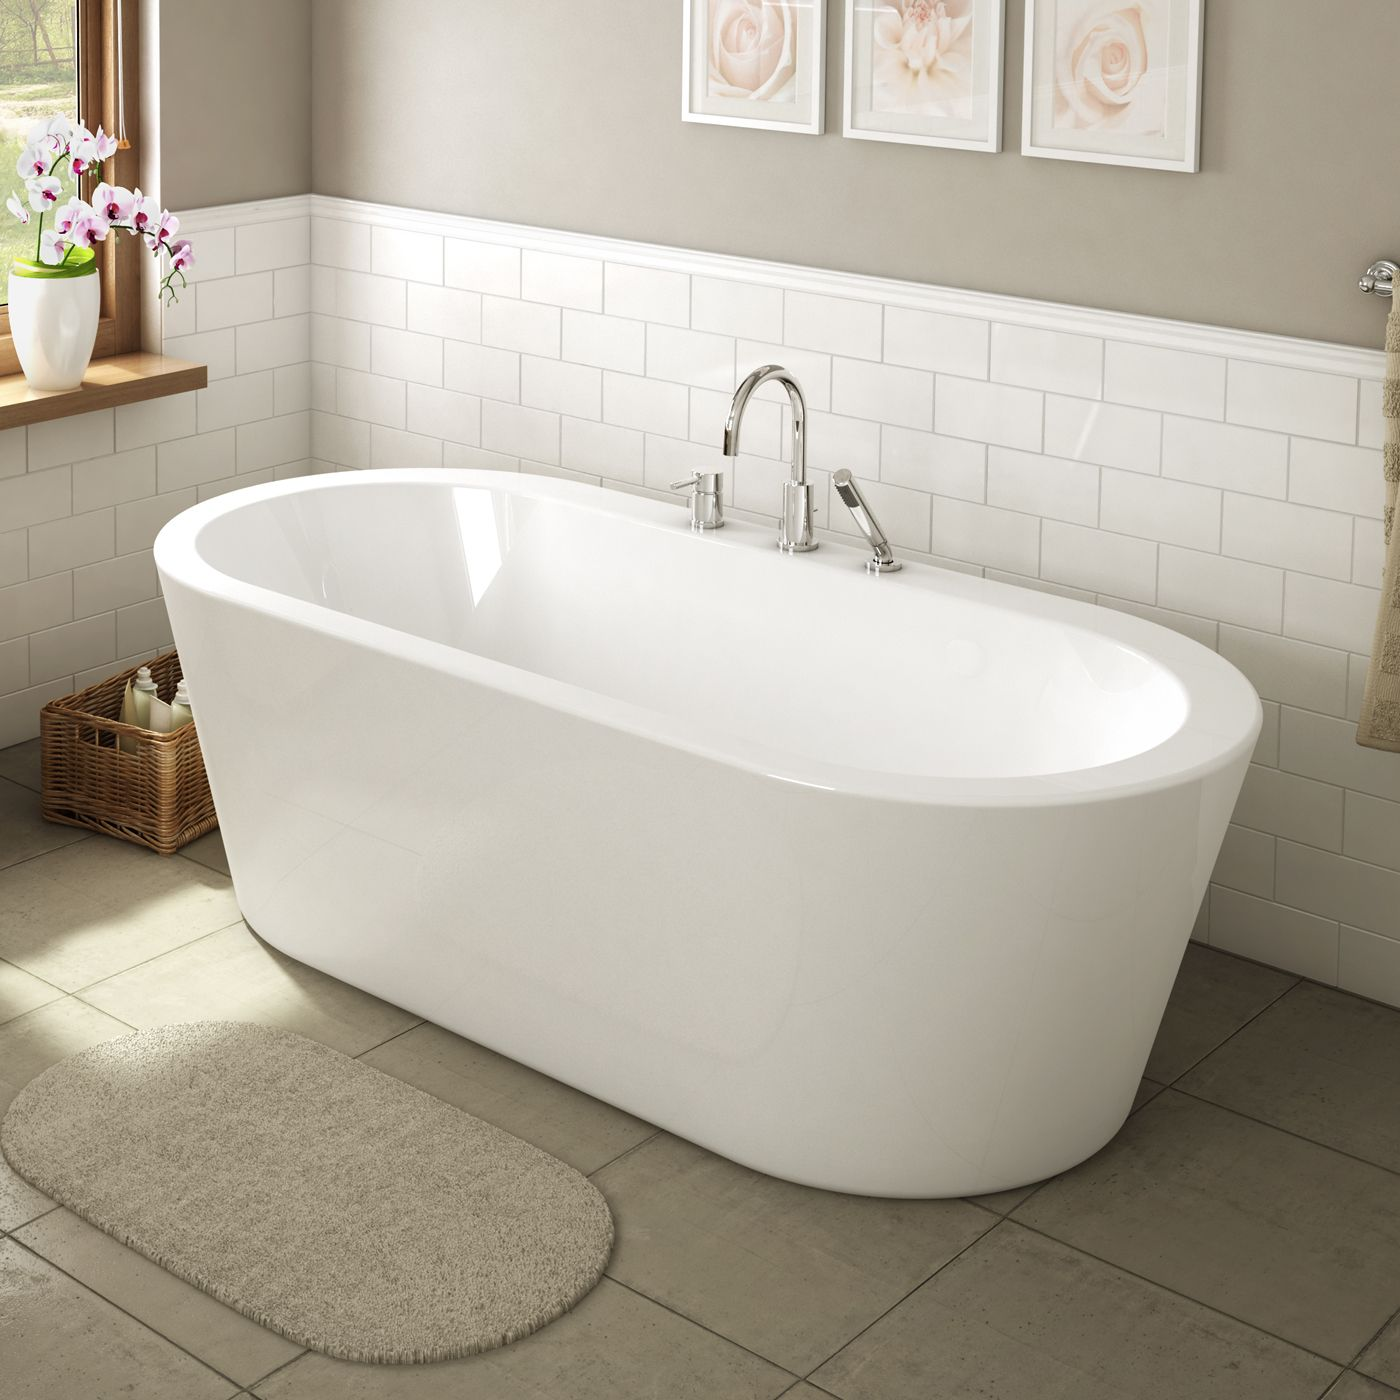 Au0026E Bath And Shower Una Pure Acrylic 71 In All In One Oval Freestanding Tub  Kit